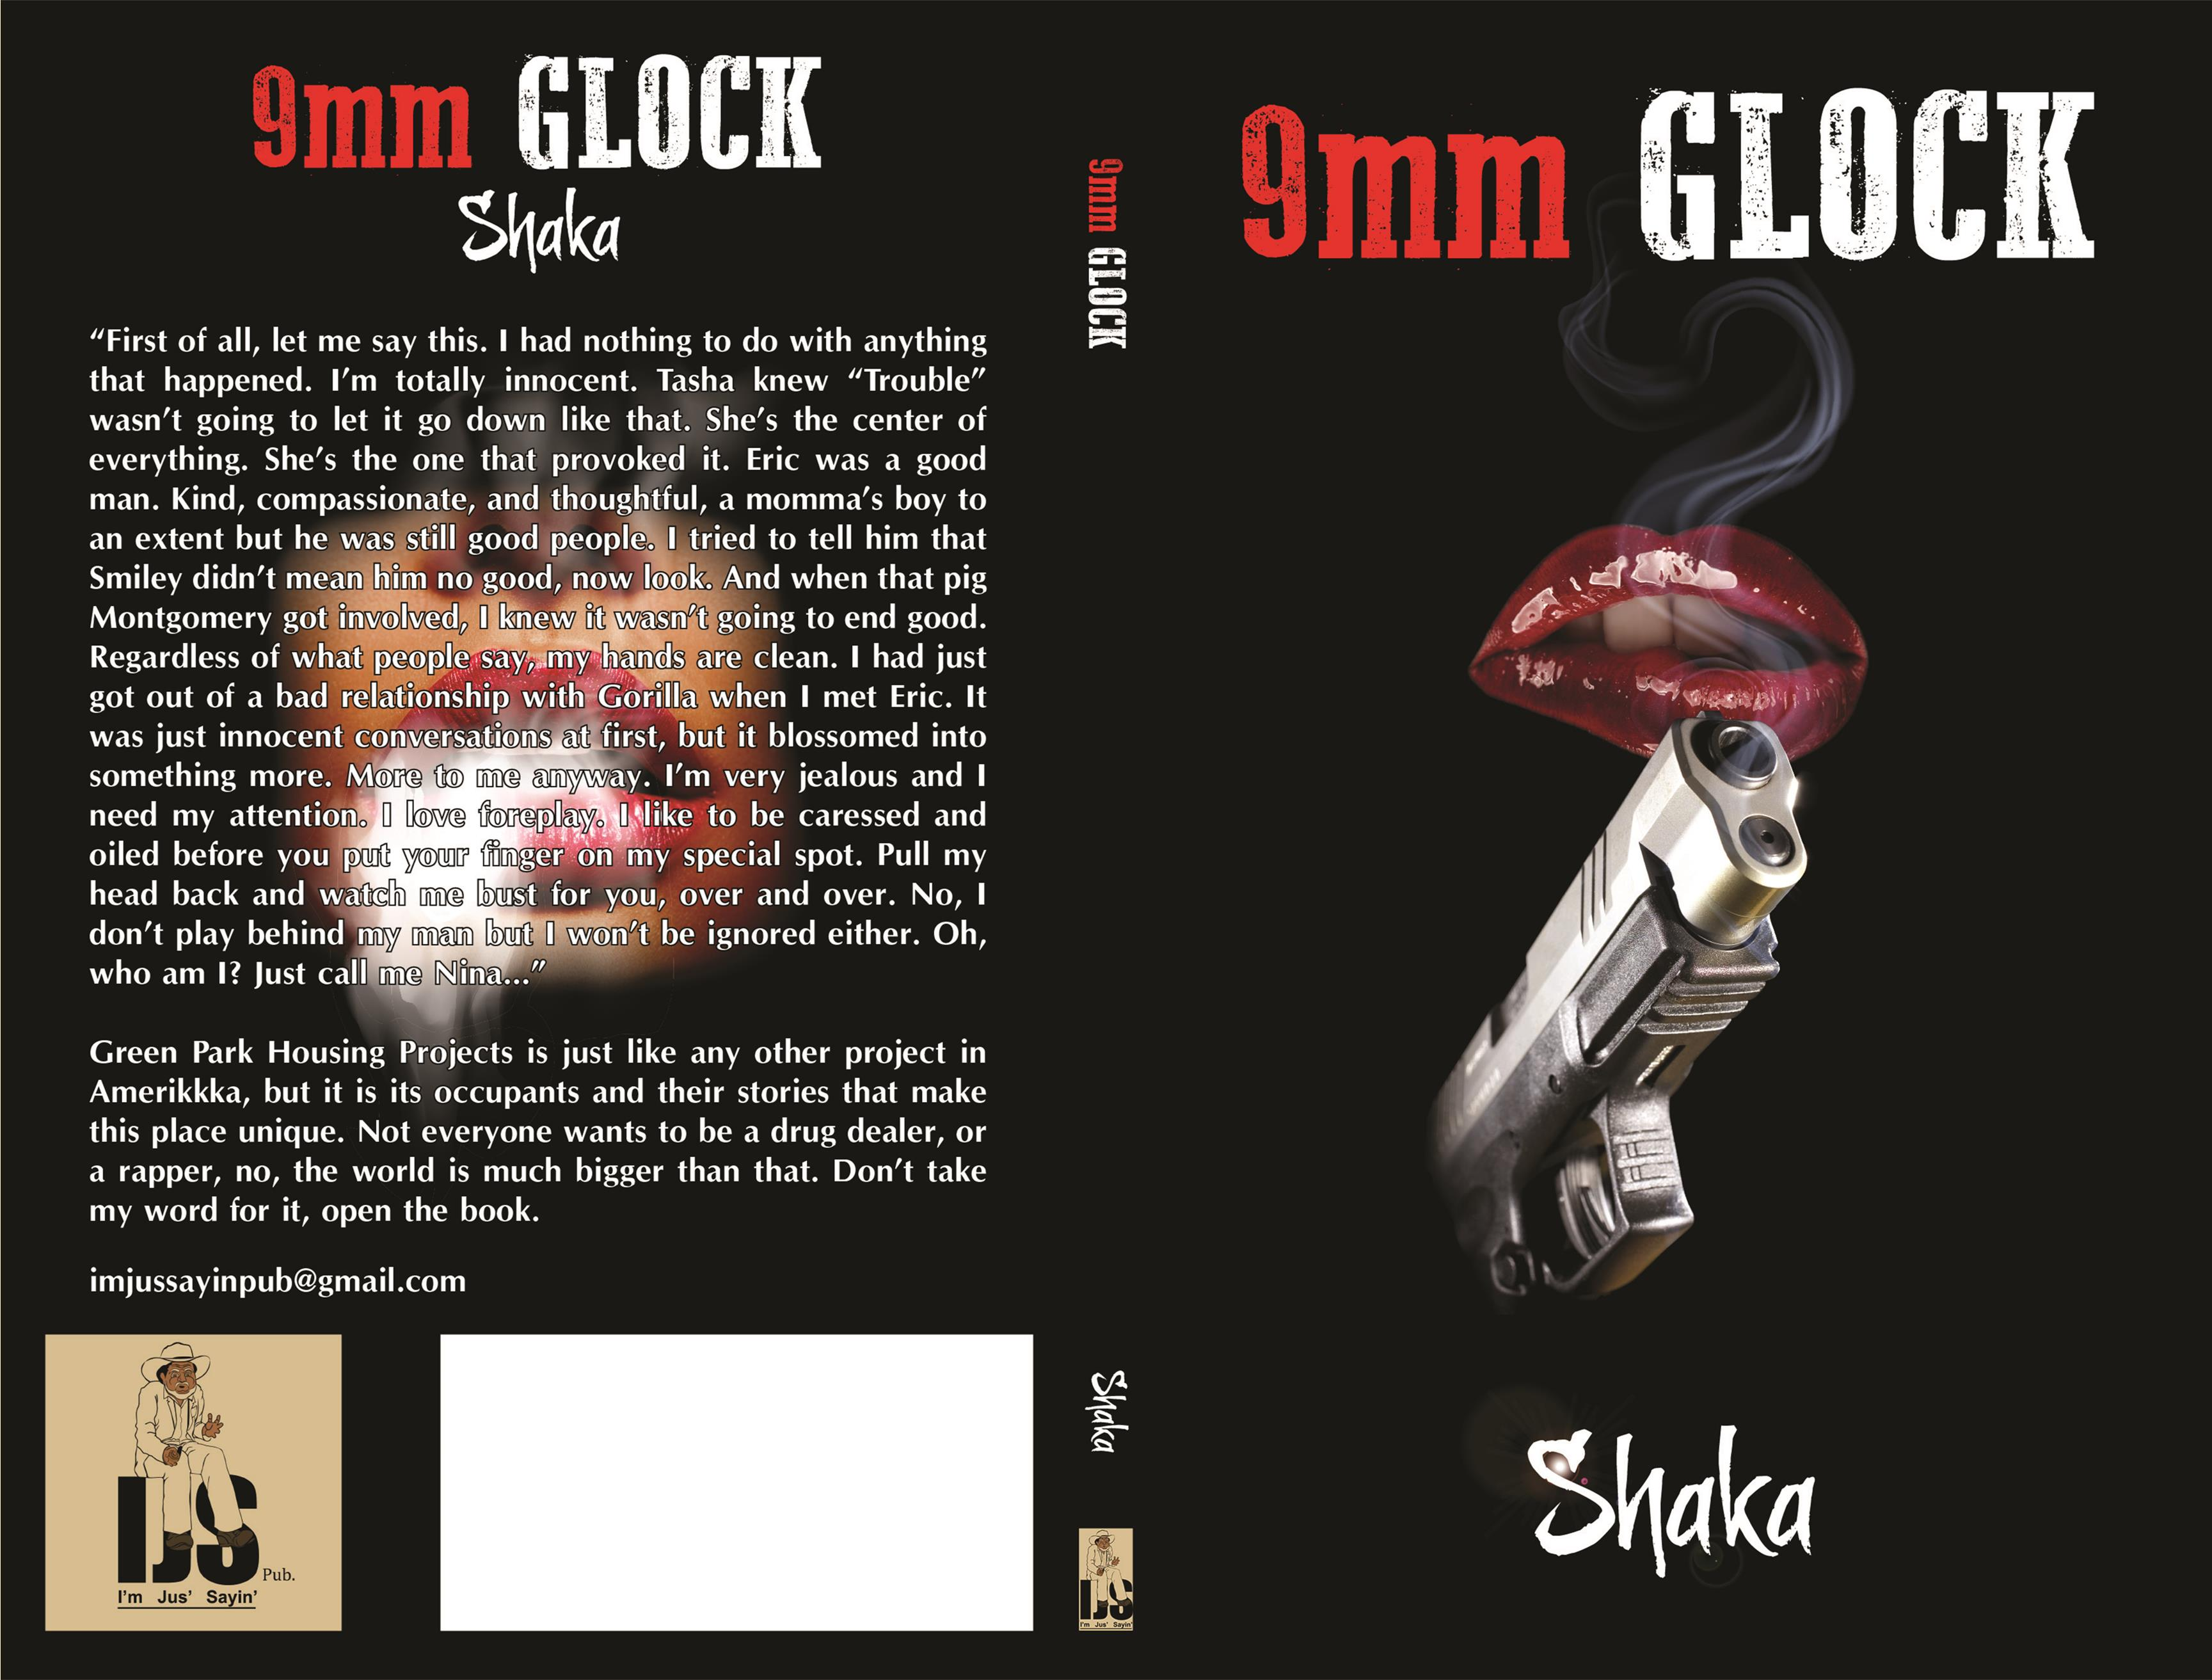 9mm GLOCK cover image